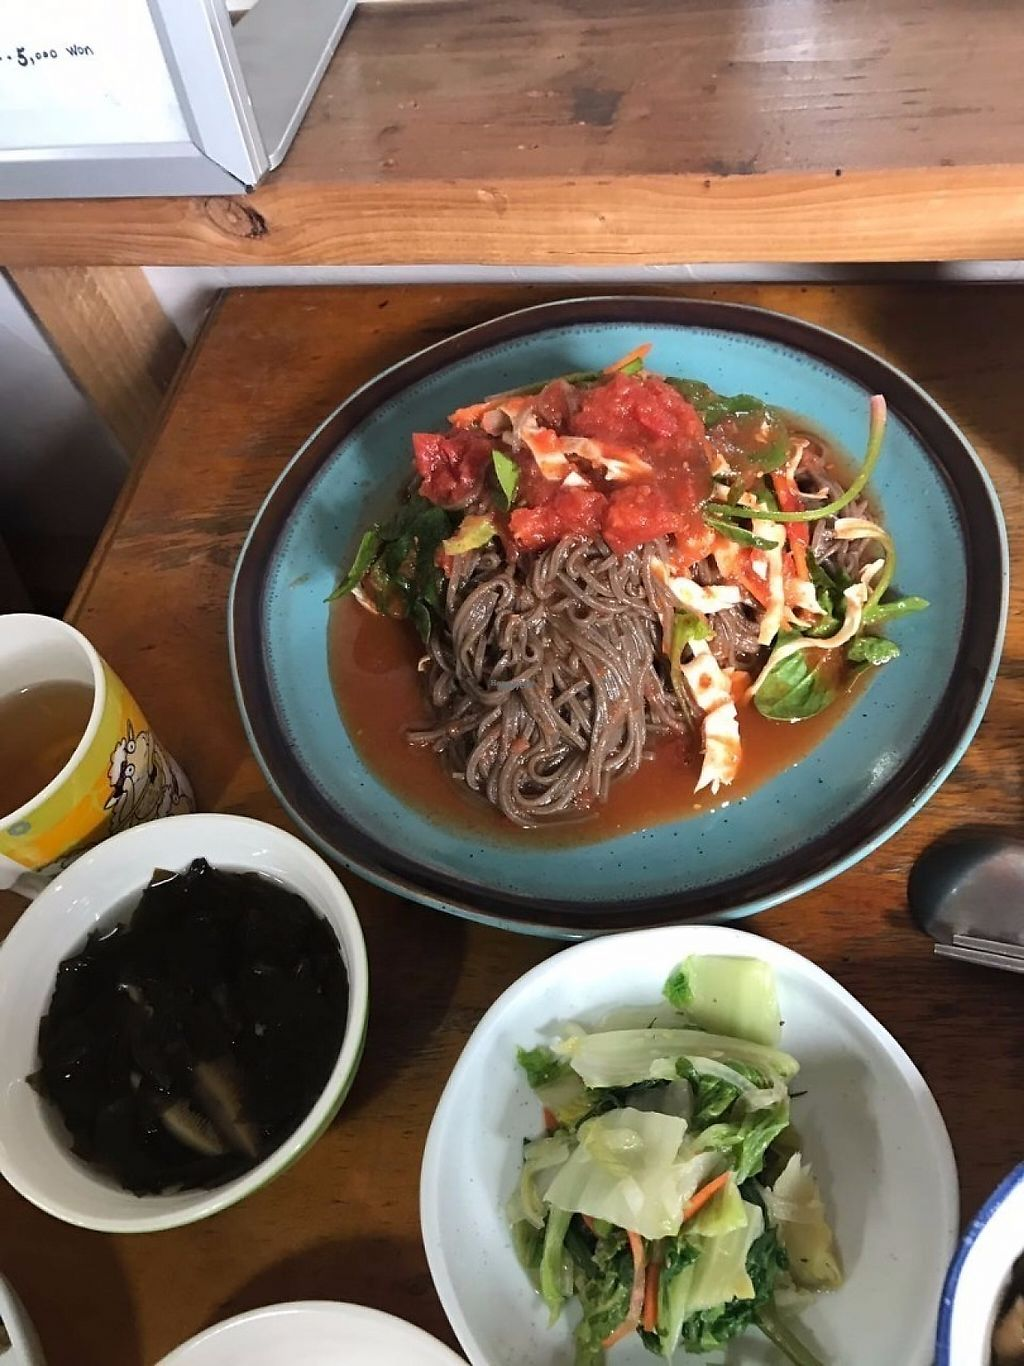 """Photo of Jayeonneuro  by <a href=""""/members/profile/Ivy%20Chan"""">Ivy Chan</a> <br/>Tomato Bibimguksu  <br/> January 26, 2017  - <a href='/contact/abuse/image/78269/217172'>Report</a>"""